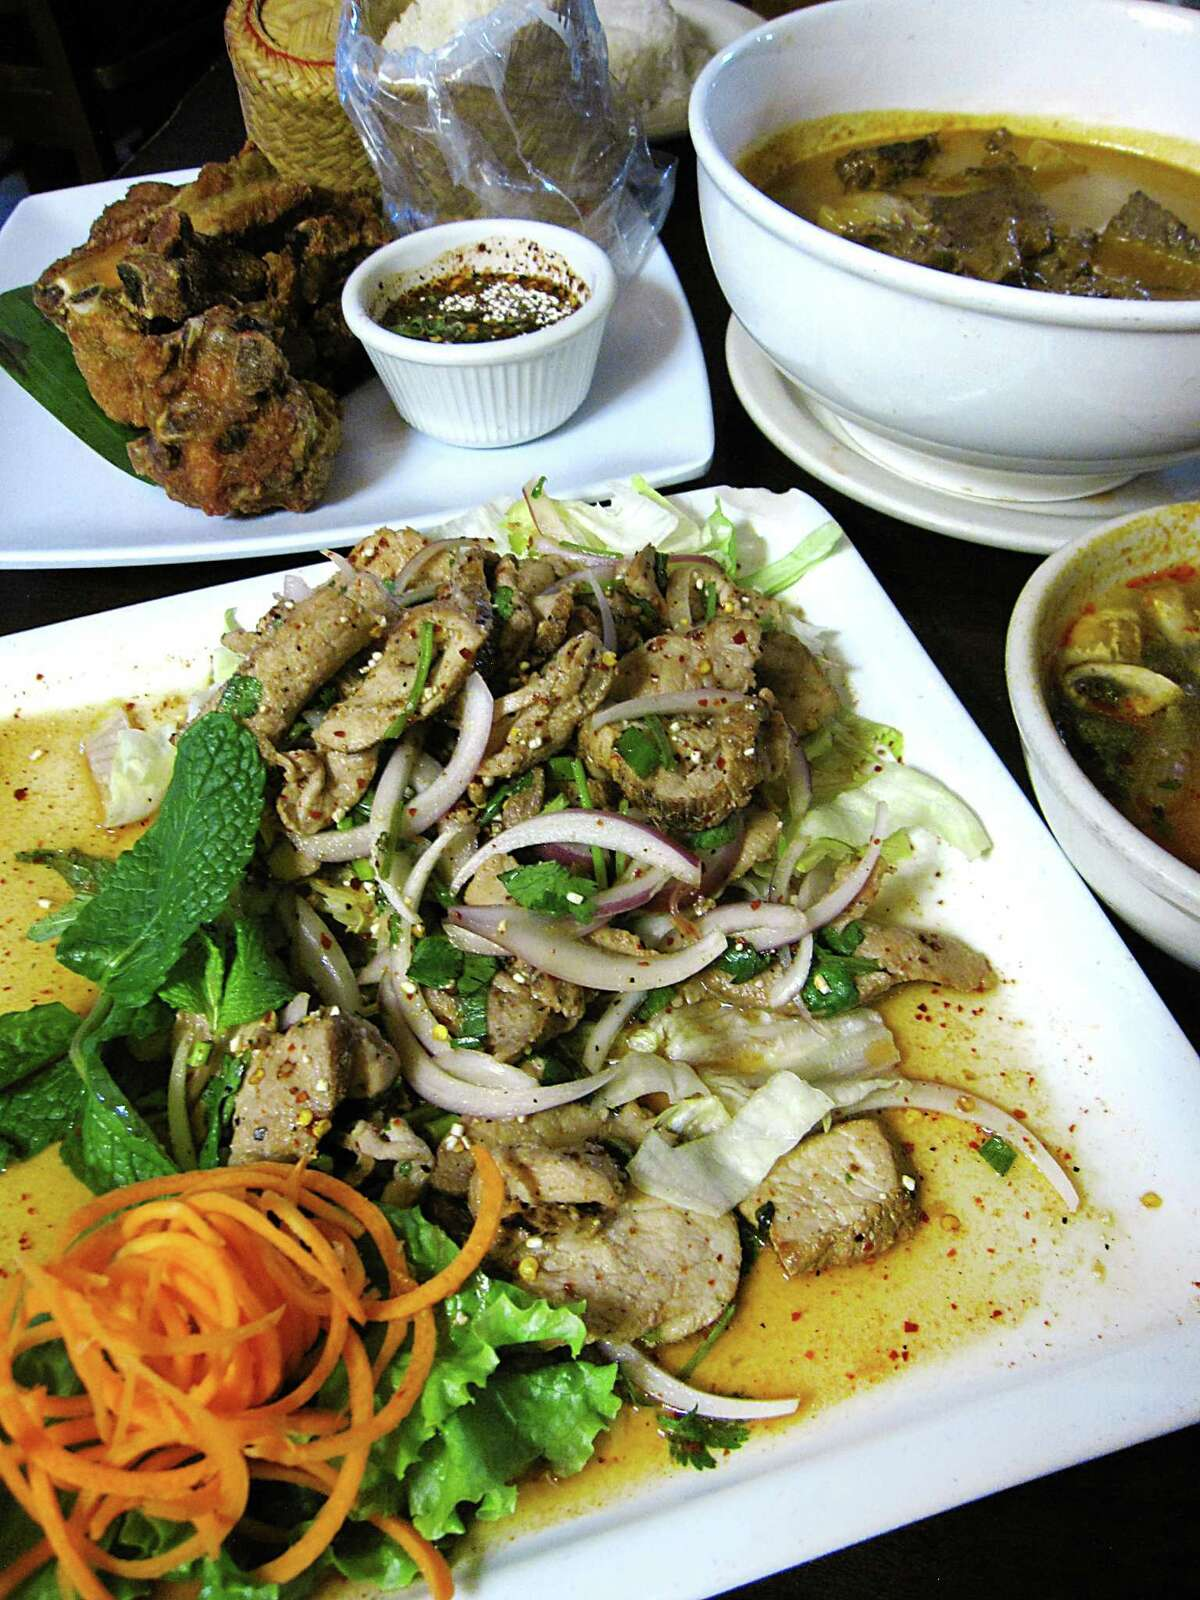 Clockwise from front: Nam tok with pork, fried pork ribs, massaman curry with beef and tom yum soup